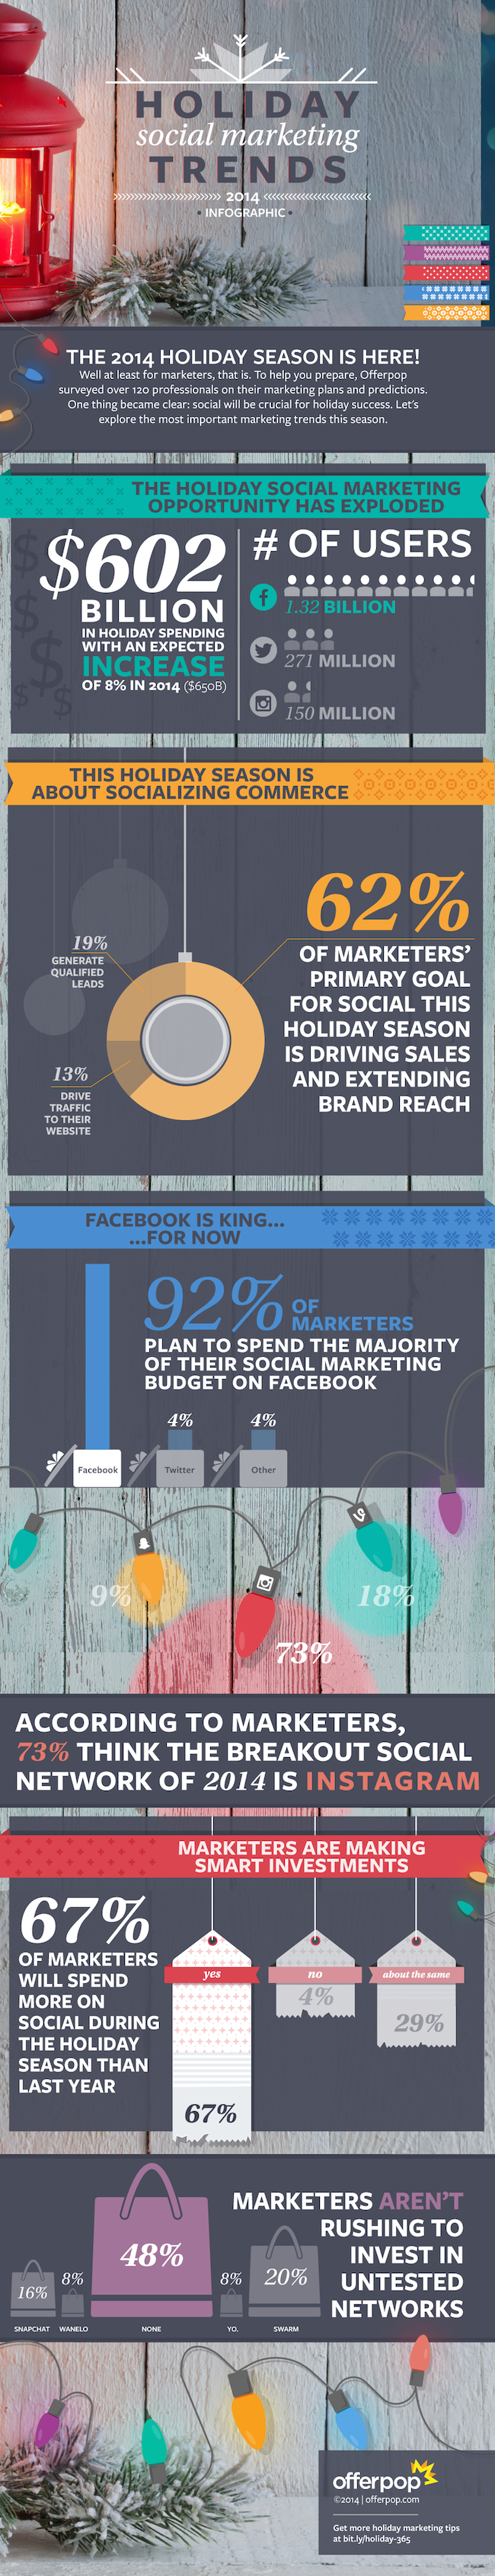 Holiday-trends-infographic